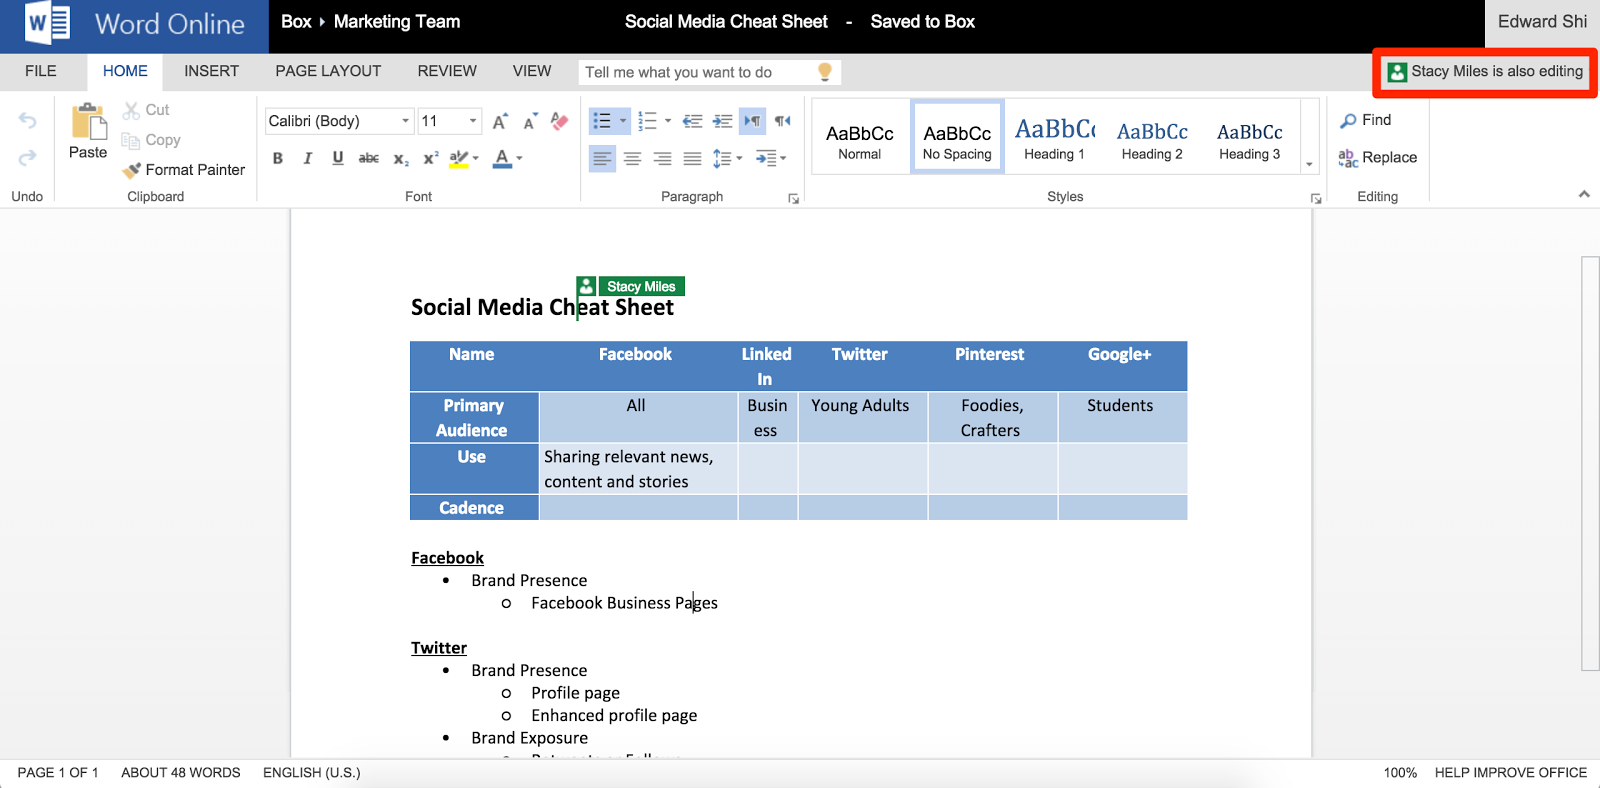 A screenshot illustrating the visuals when there are multiple people editing a Word Online document